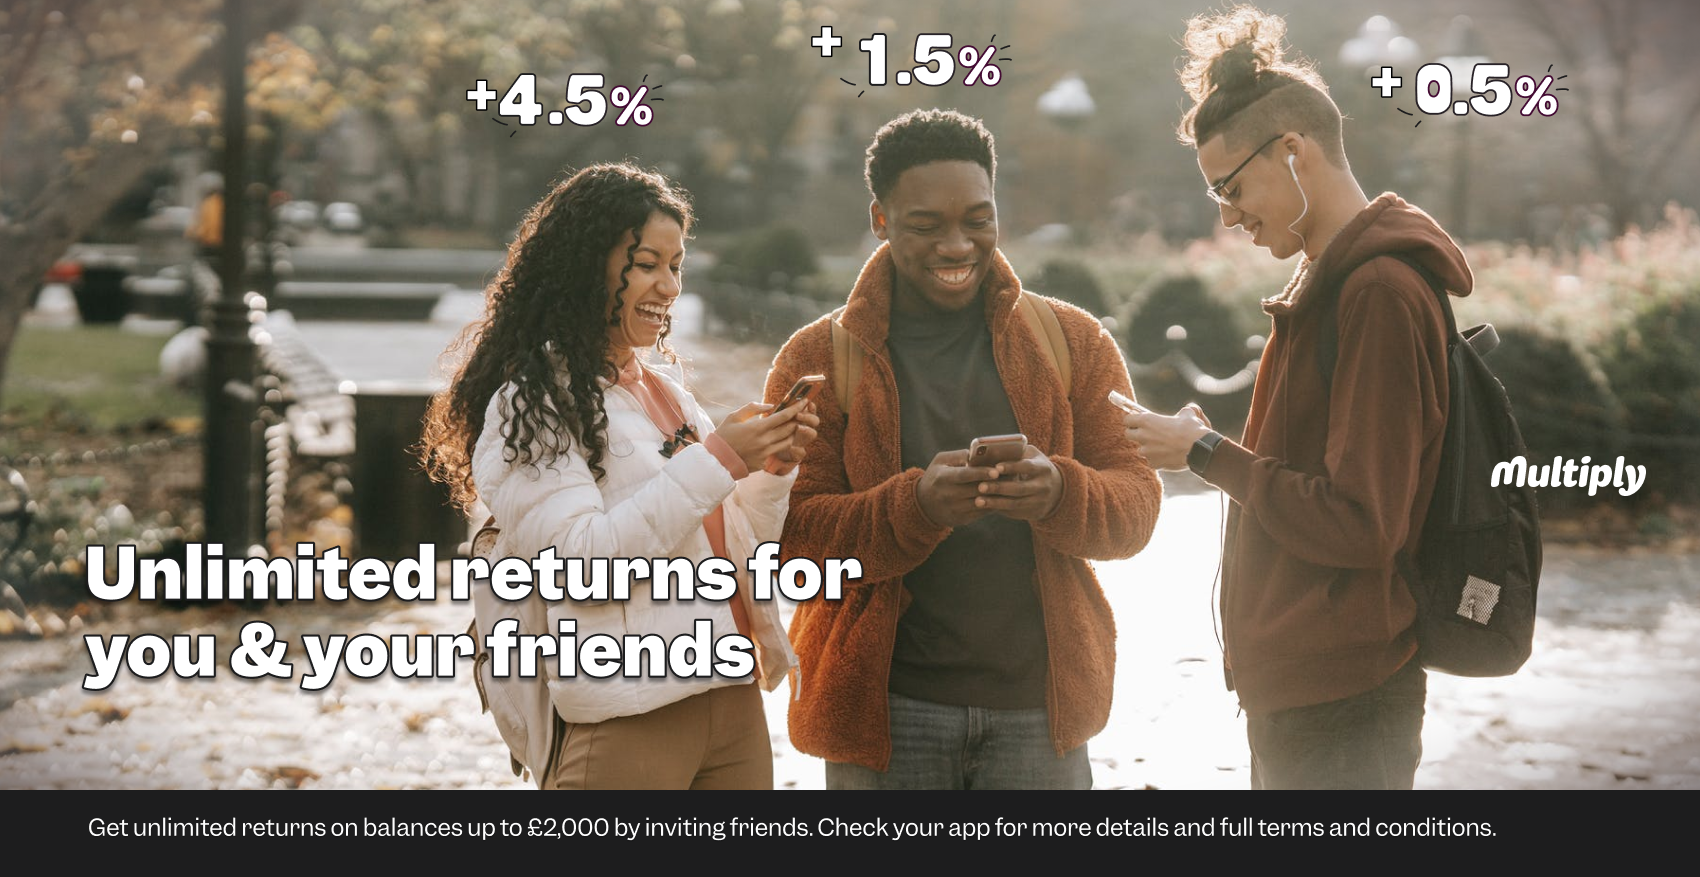 Unlimited returns on your savings